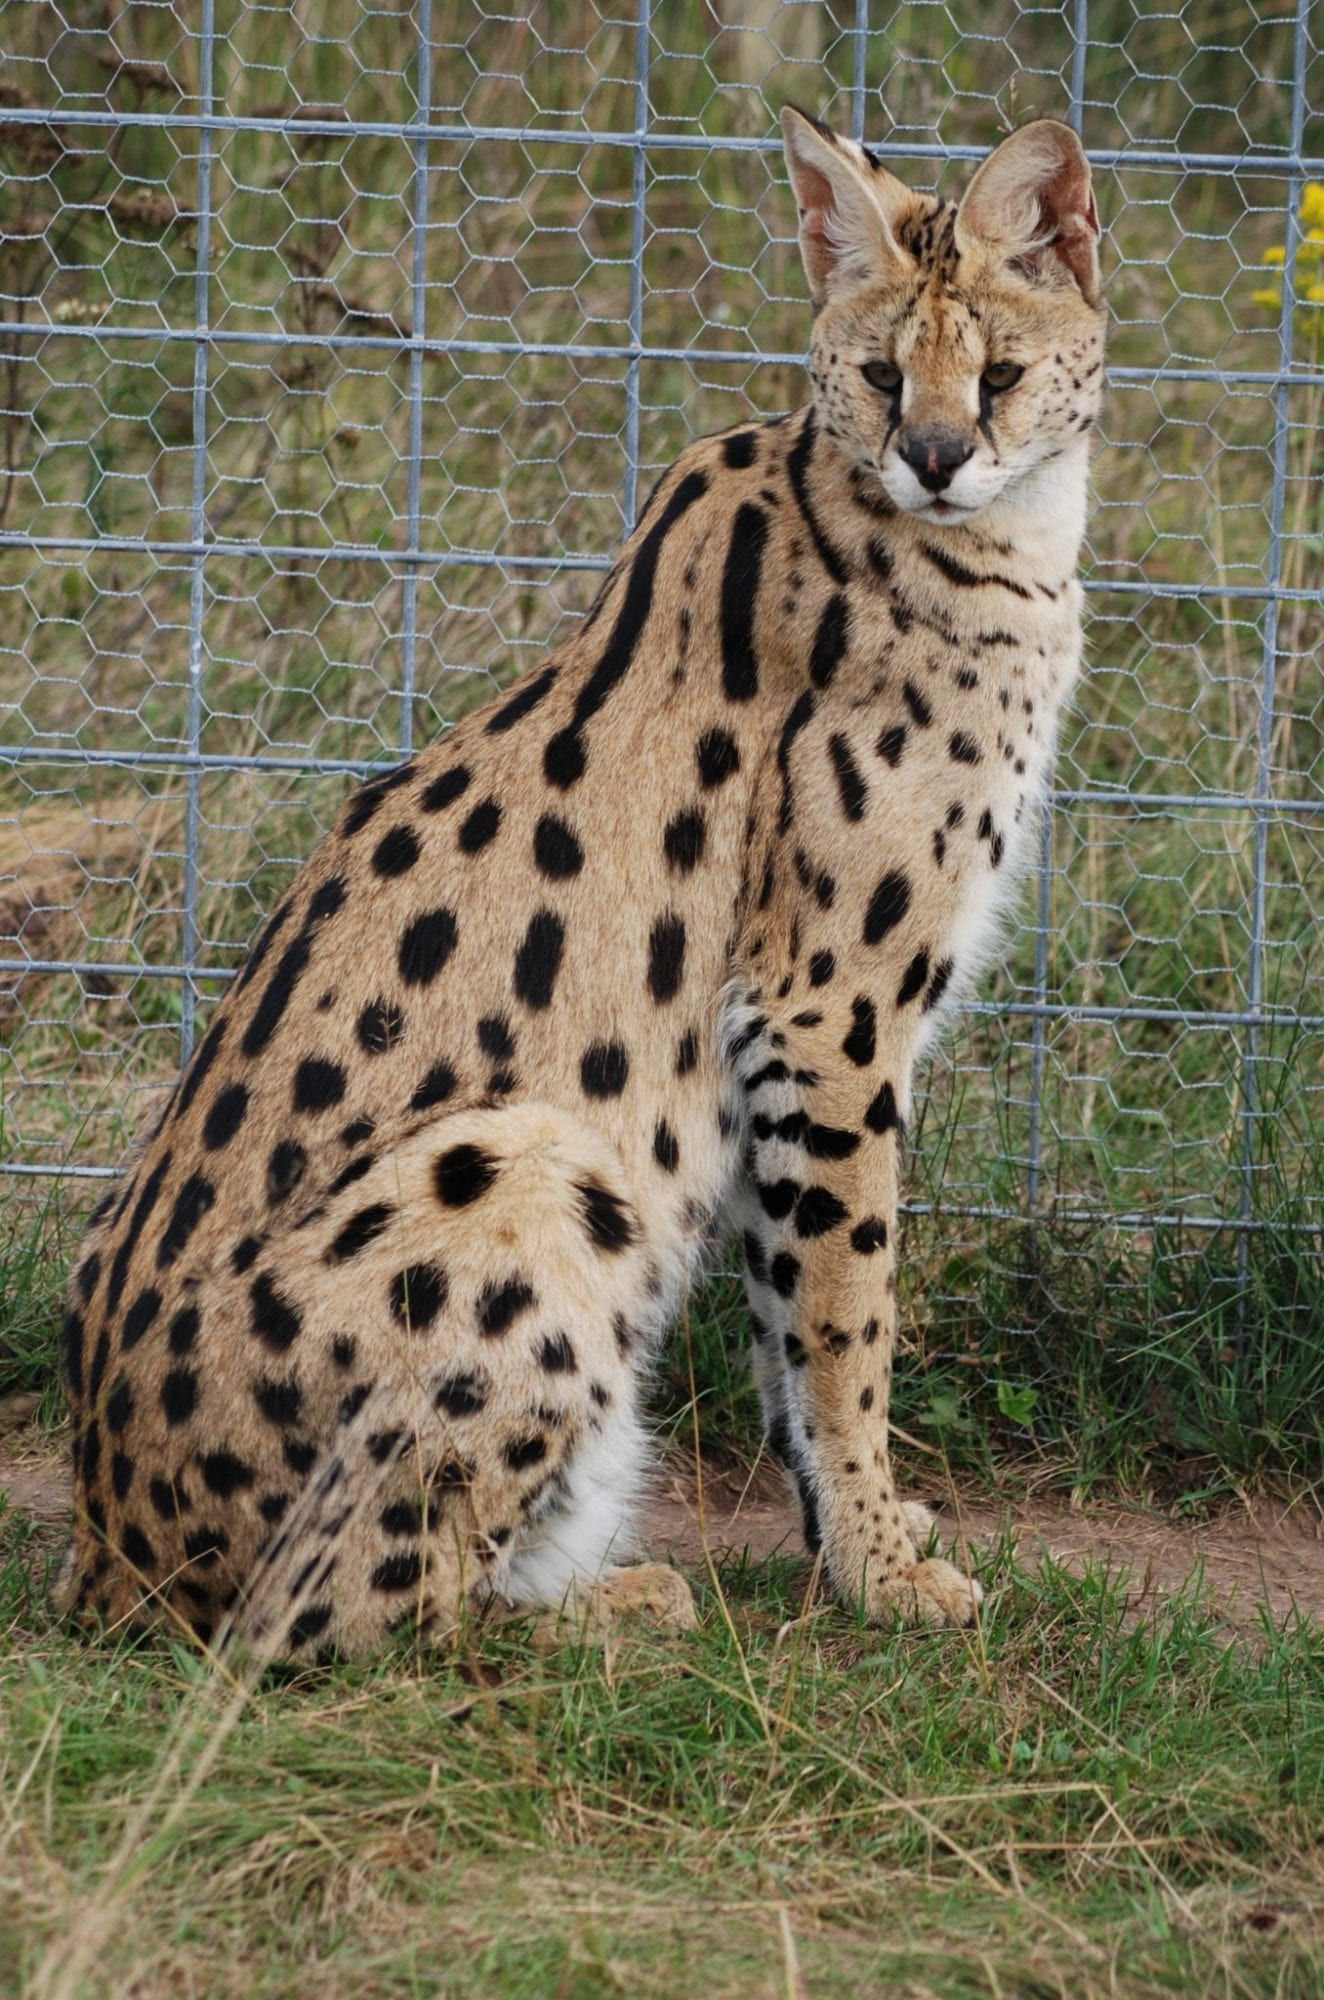 A serval cat against wire fence